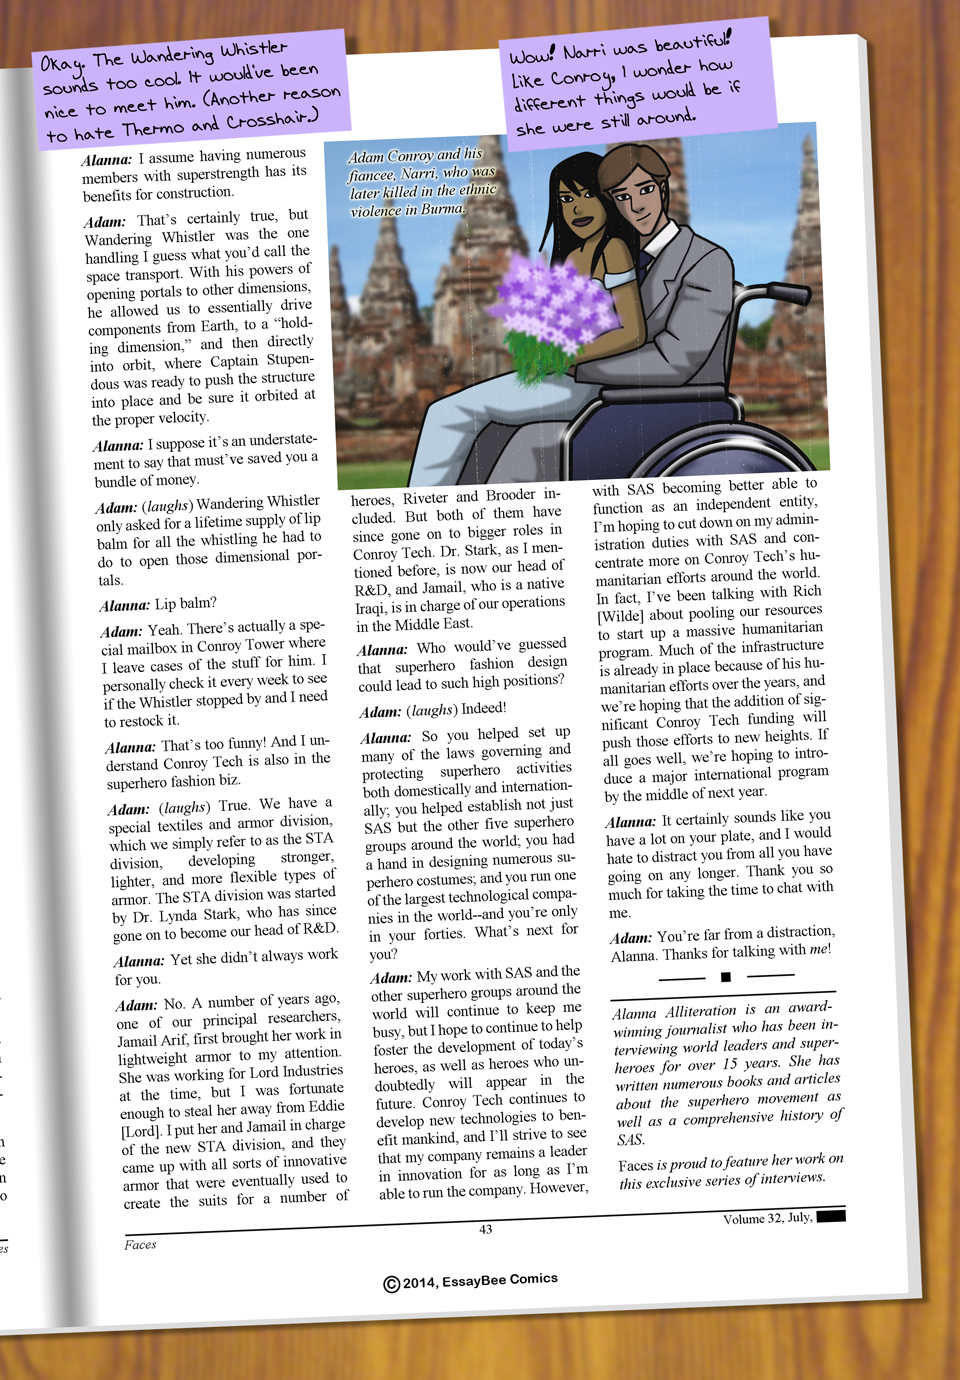 Interleude--Faces Magazine Interview 3 Page 6